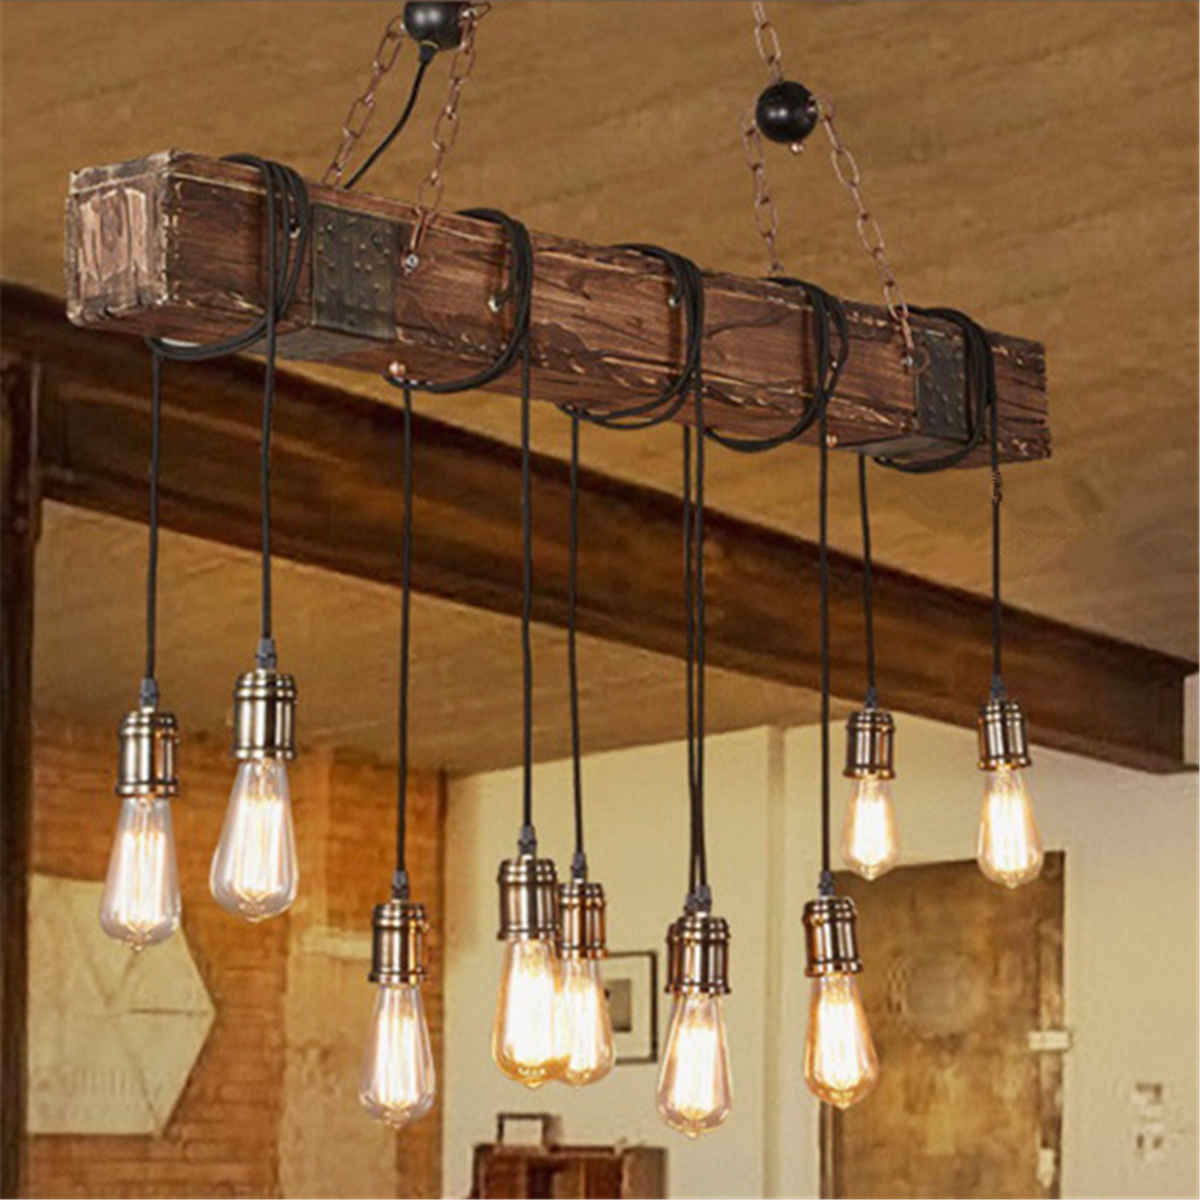 Kitchen and dining room lighting Coordinating Rustic Farmhouse Furniture E26 Wood Beam Chandelier Pendant Lighting Fixture Kitchen Dining Room Bar Hotel Industrial Urban Cottage Industries Dining Room Chandeliers